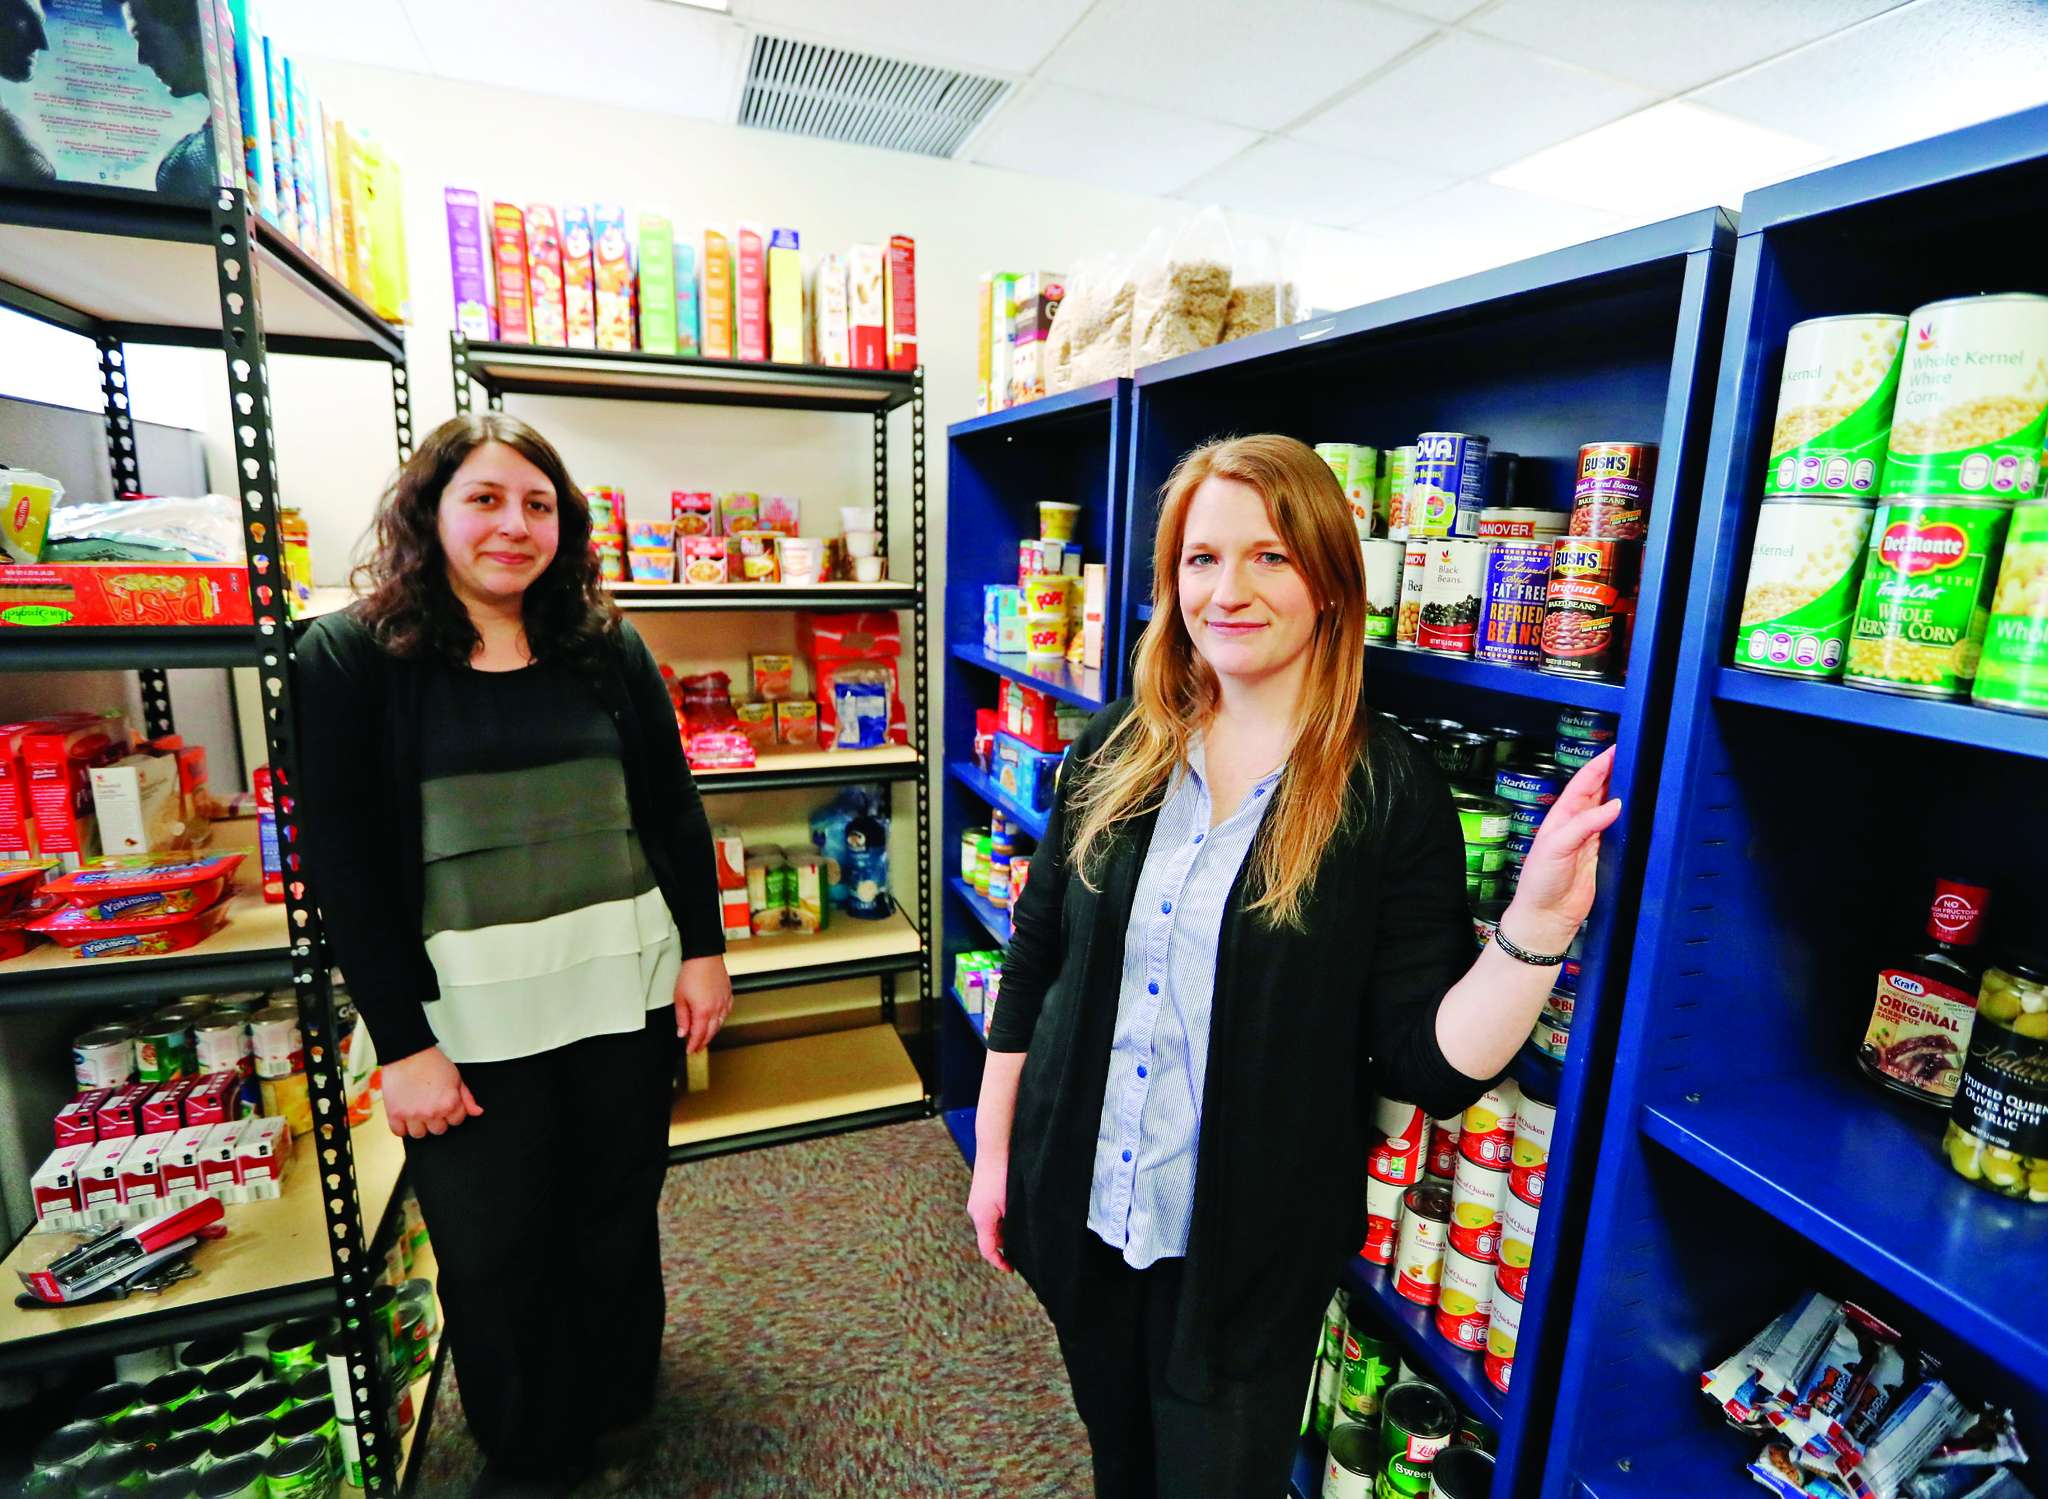 Jodi Roth-Saks (left) and Tori Nuccio in the new food pantry at West Chester University.